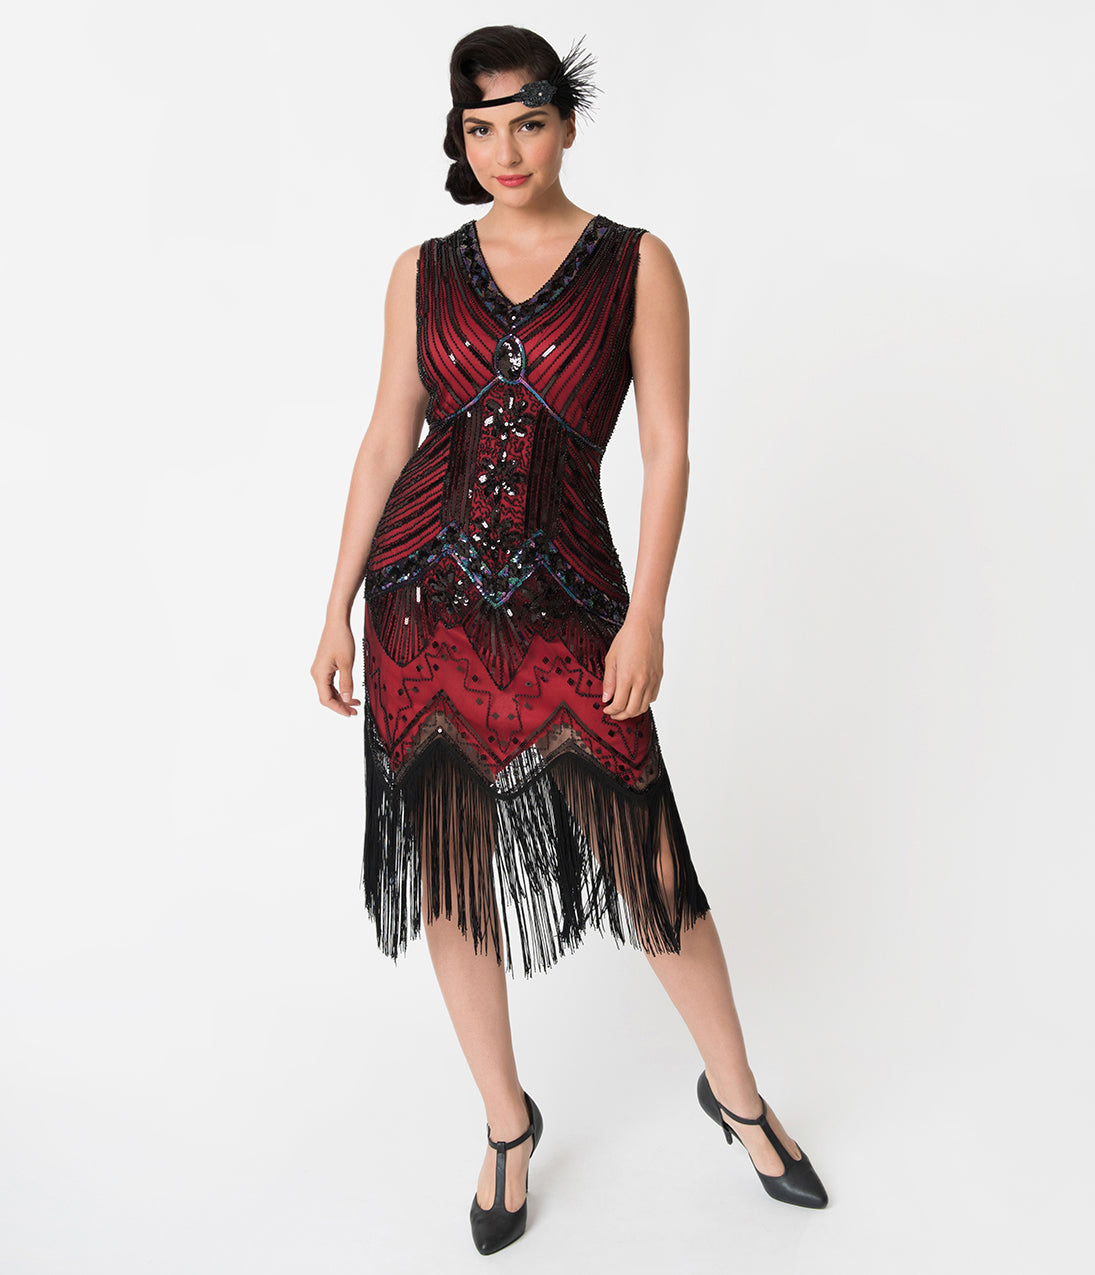 Roaring 20s Costumes- Flapper Costumes, Gangster Costumes Unique Vintage 1920S Deco Red  Black Veronique Fringe Flapper Dress $98.00 AT vintagedancer.com